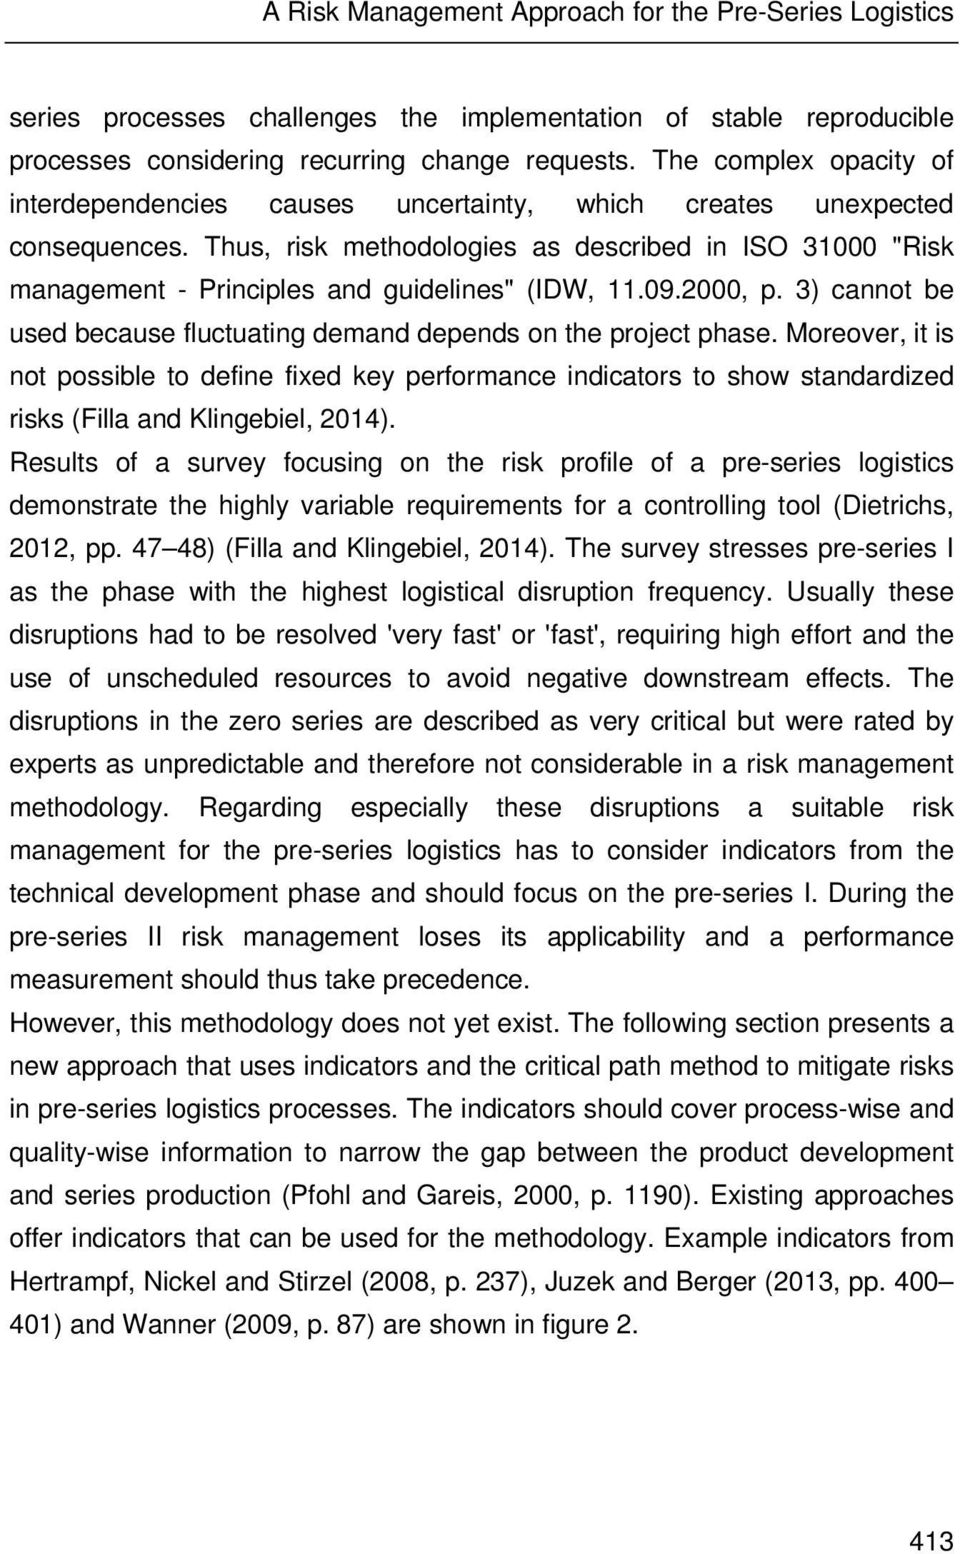 "Thus, risk methodologies as described in ISO 31000 ""Risk management - Principles and guidelines"" (IDW, 11.09.2000, p. 3) cannot be used because fluctuating demand depends on the project phase."